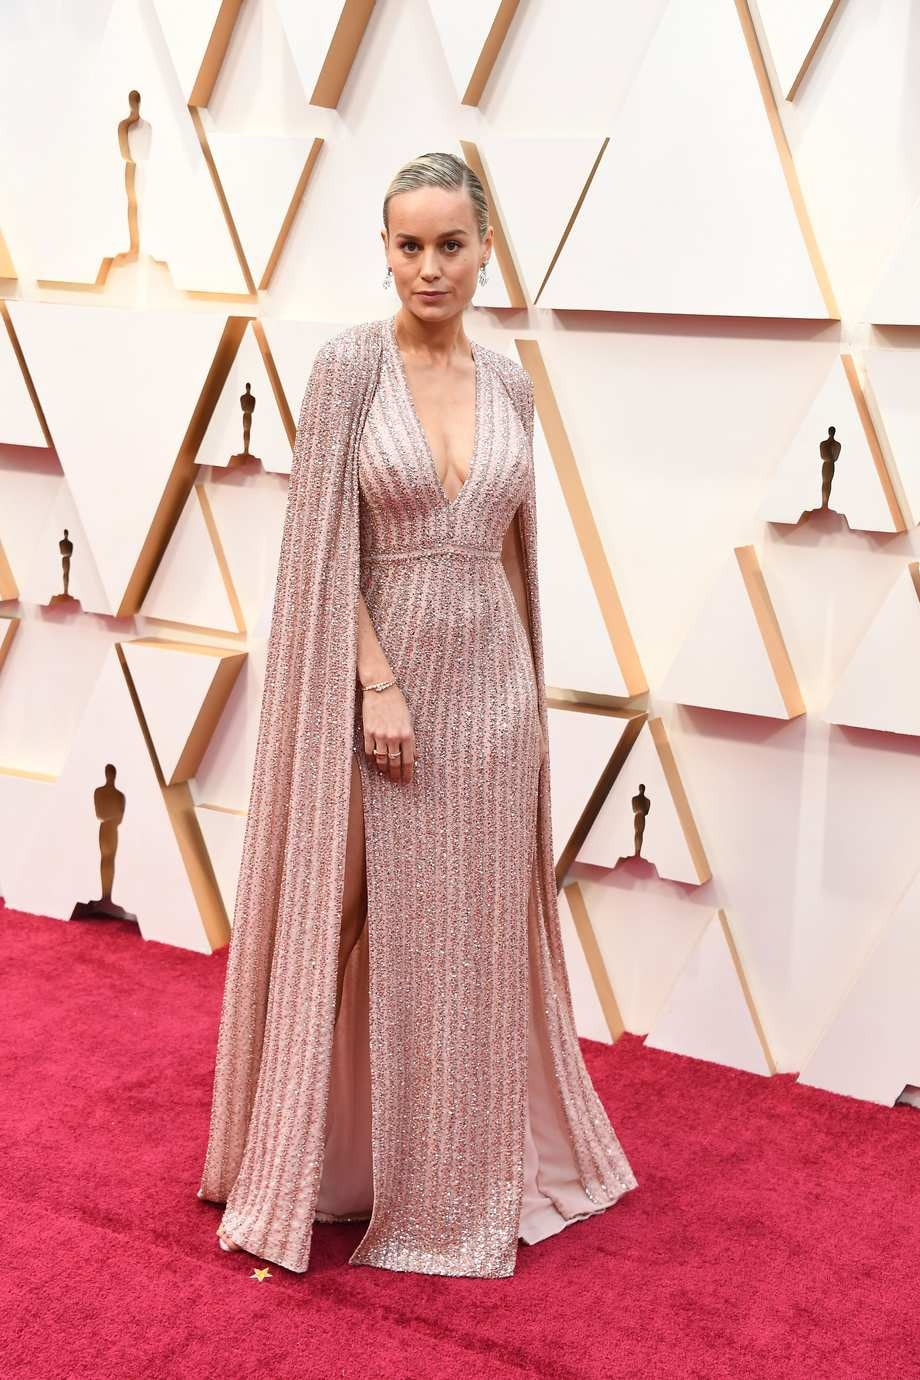 Brie Larson in Celine - one of the best dressed at the 2020 Oscars